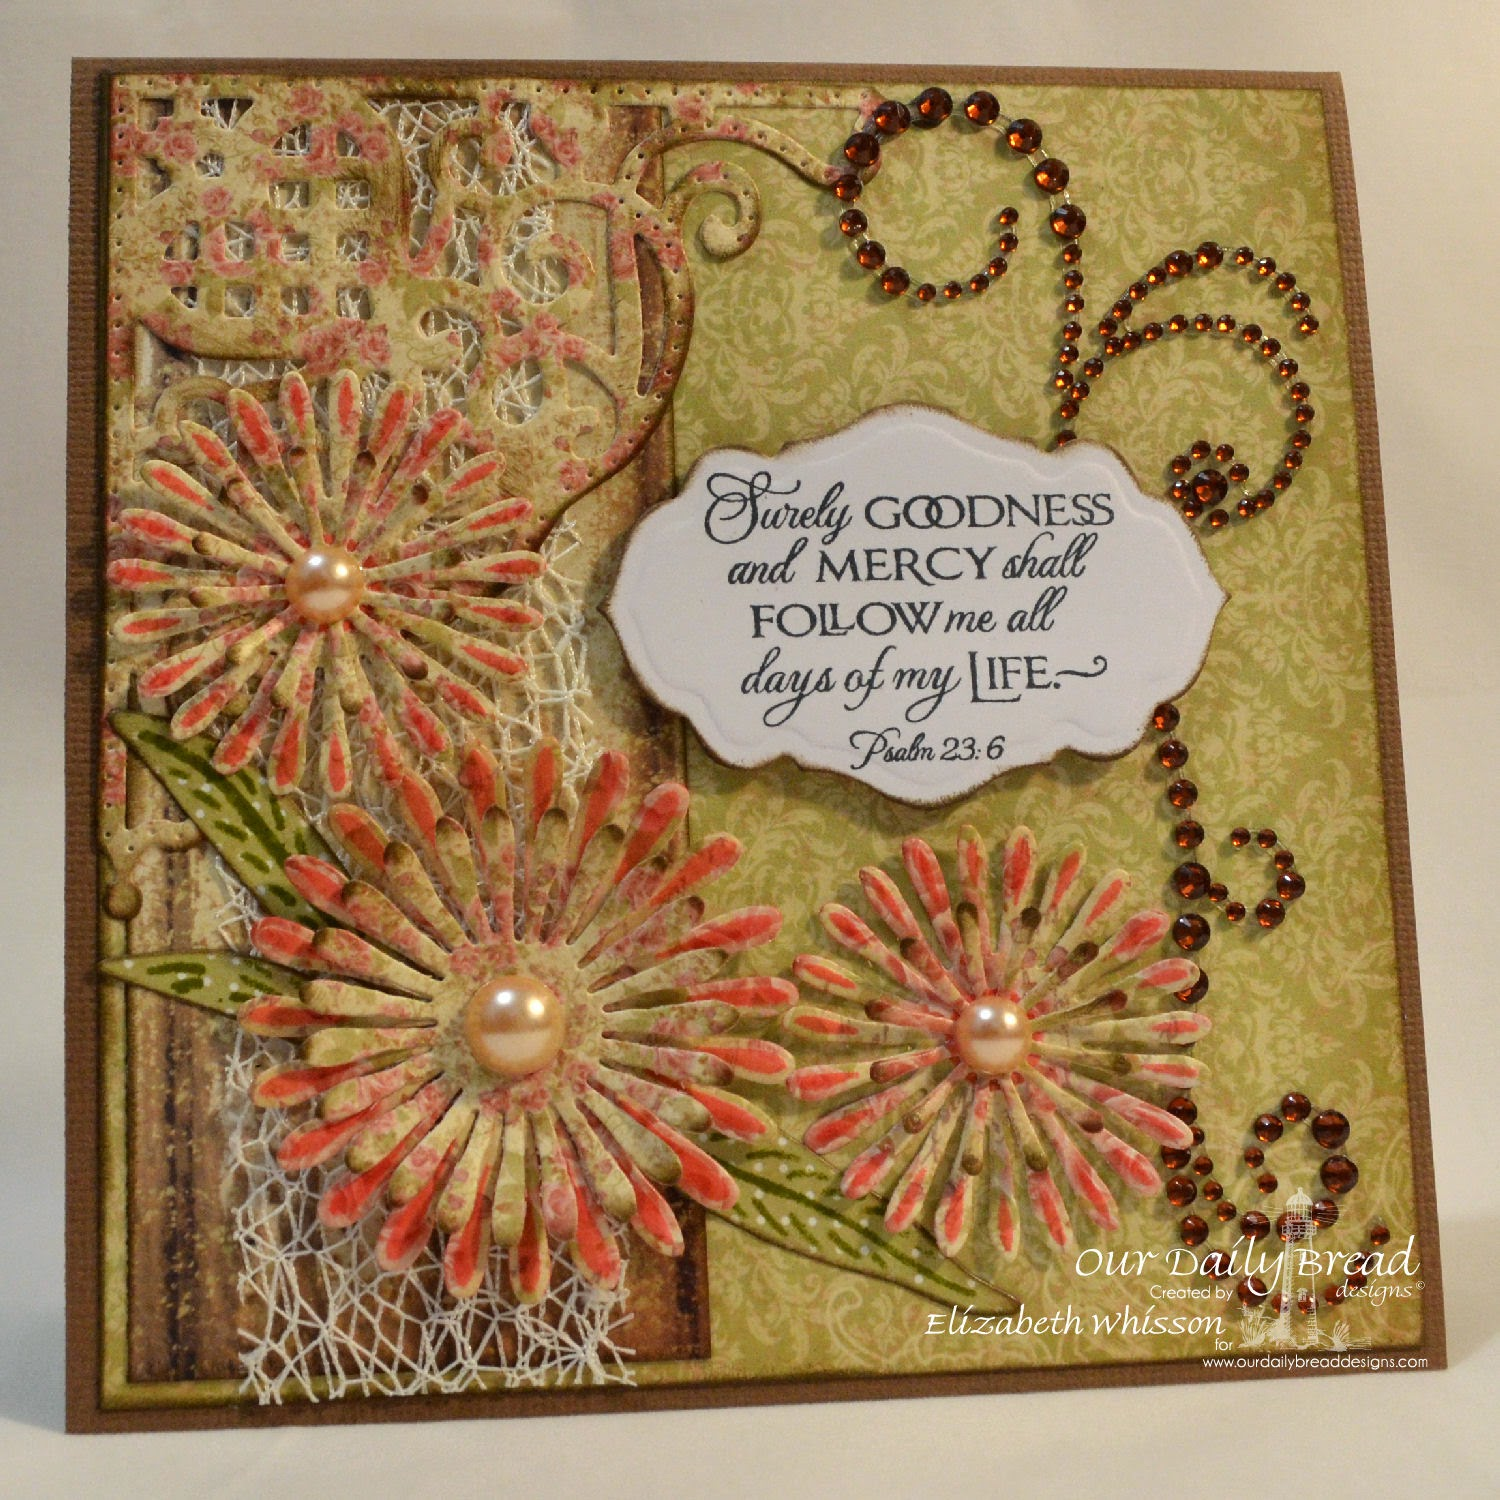 Elizabeth Whisson, Our Daily Bread Designs, Cherry Blossom, ODBD Antique Labels and Border Dies, ODBD Asters and Leaves Dies, ODBD Decorative Corner Dies, ODBD Blushing Rose Collection, handmade card, Psalm 23:6, bible verse